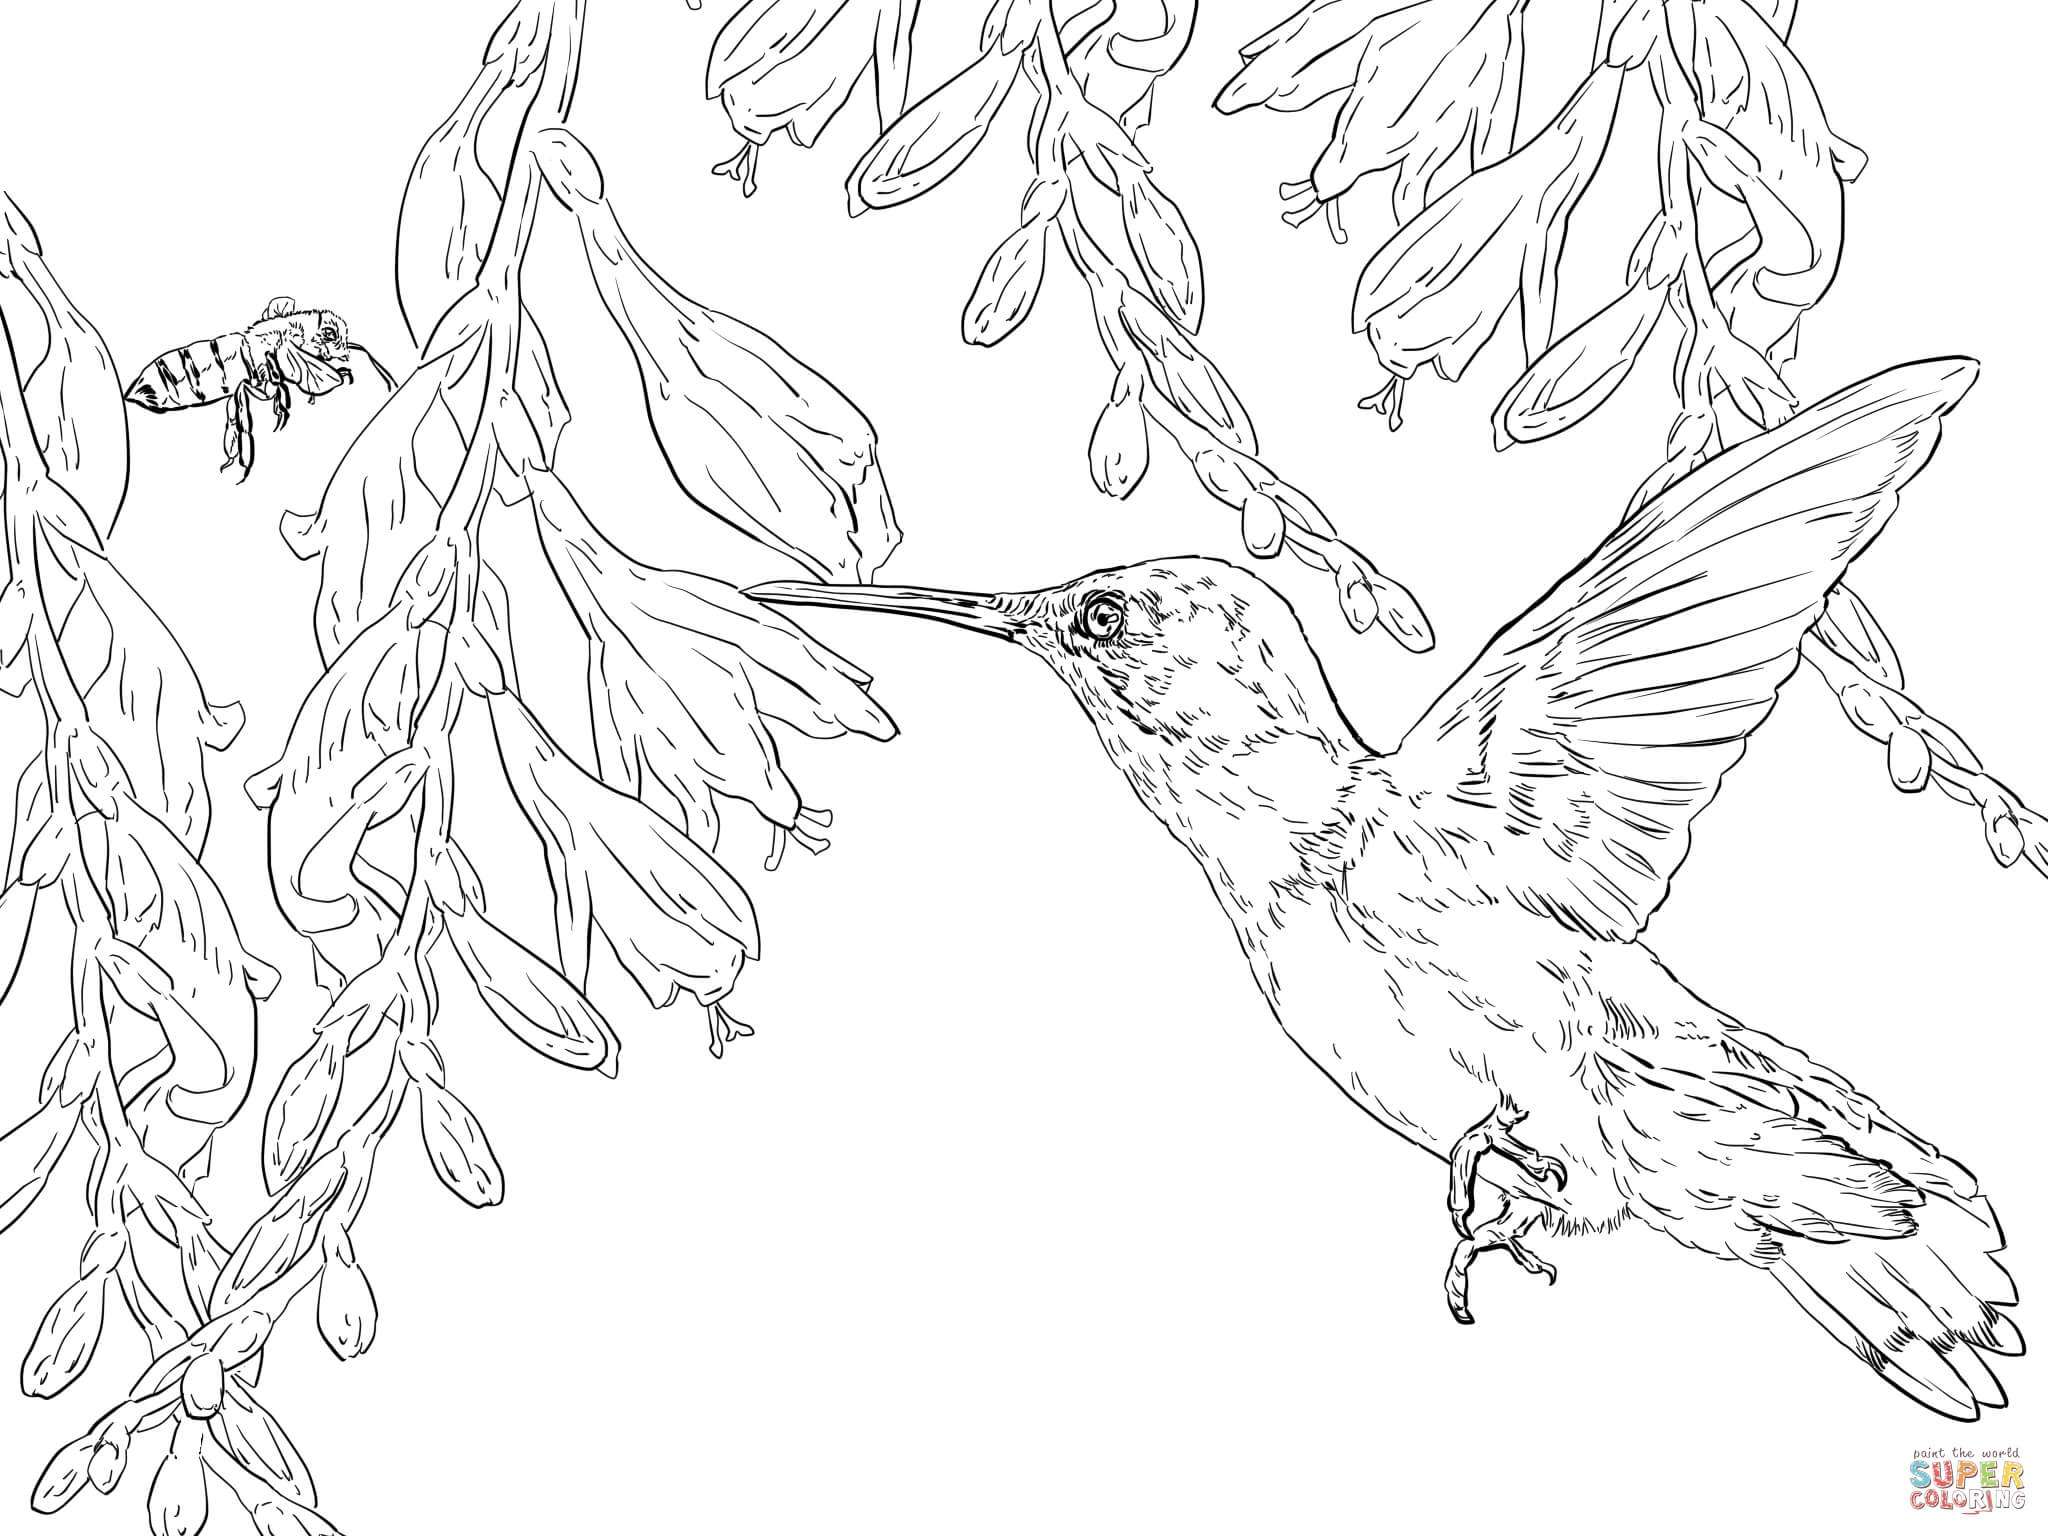 Bee Hummingbird Coloring Page | Free Printable Coloring Pages - Free Printable Pictures Of Hummingbirds